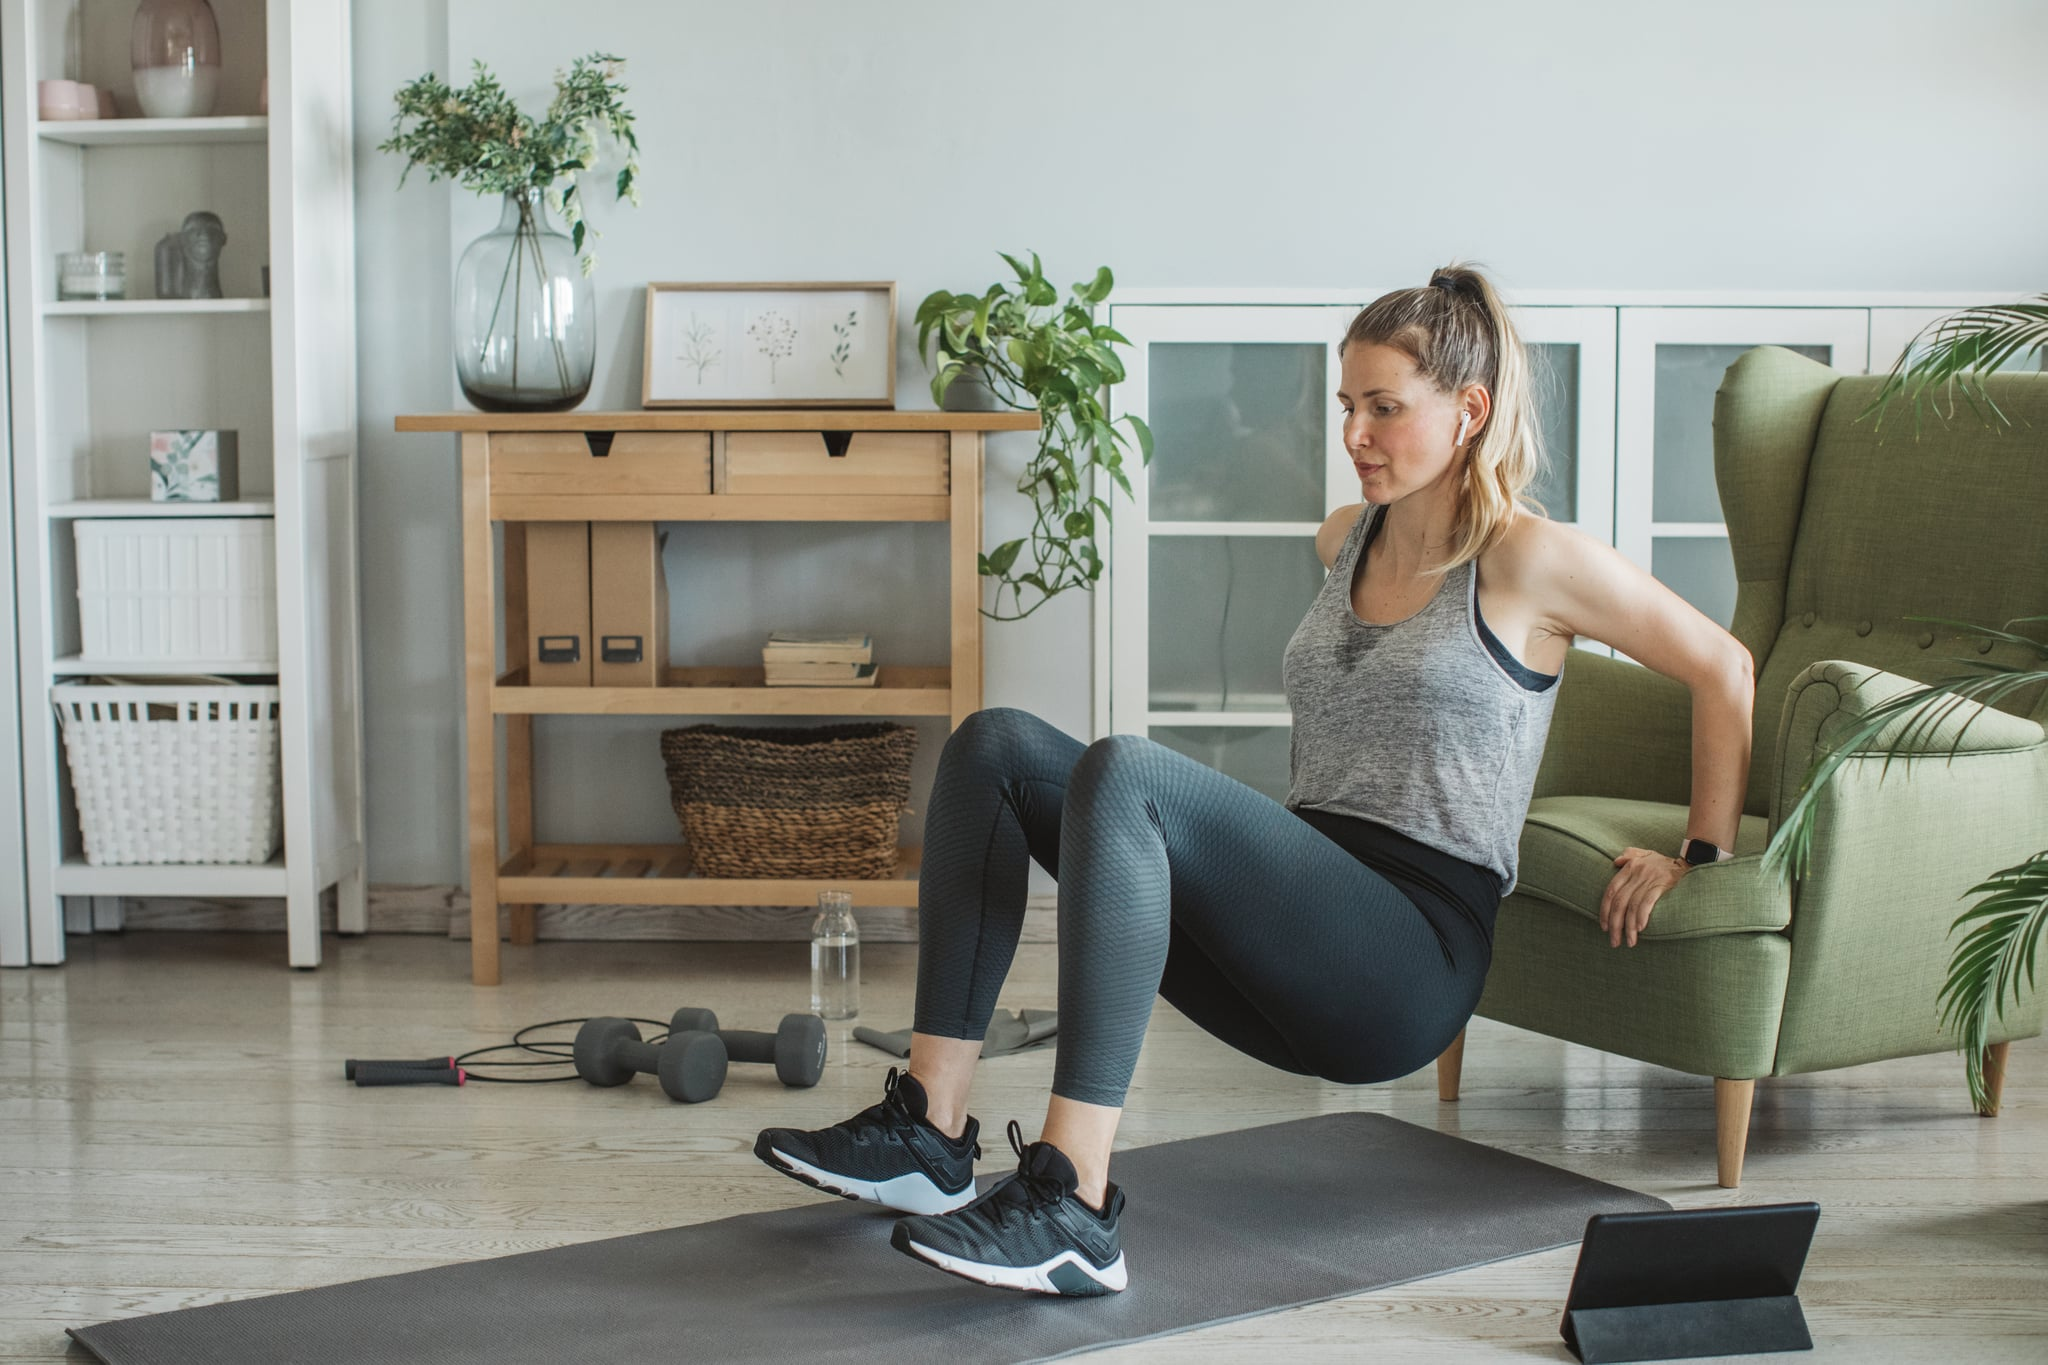 Women at home during pandemic isolation doing workout to stay in shape